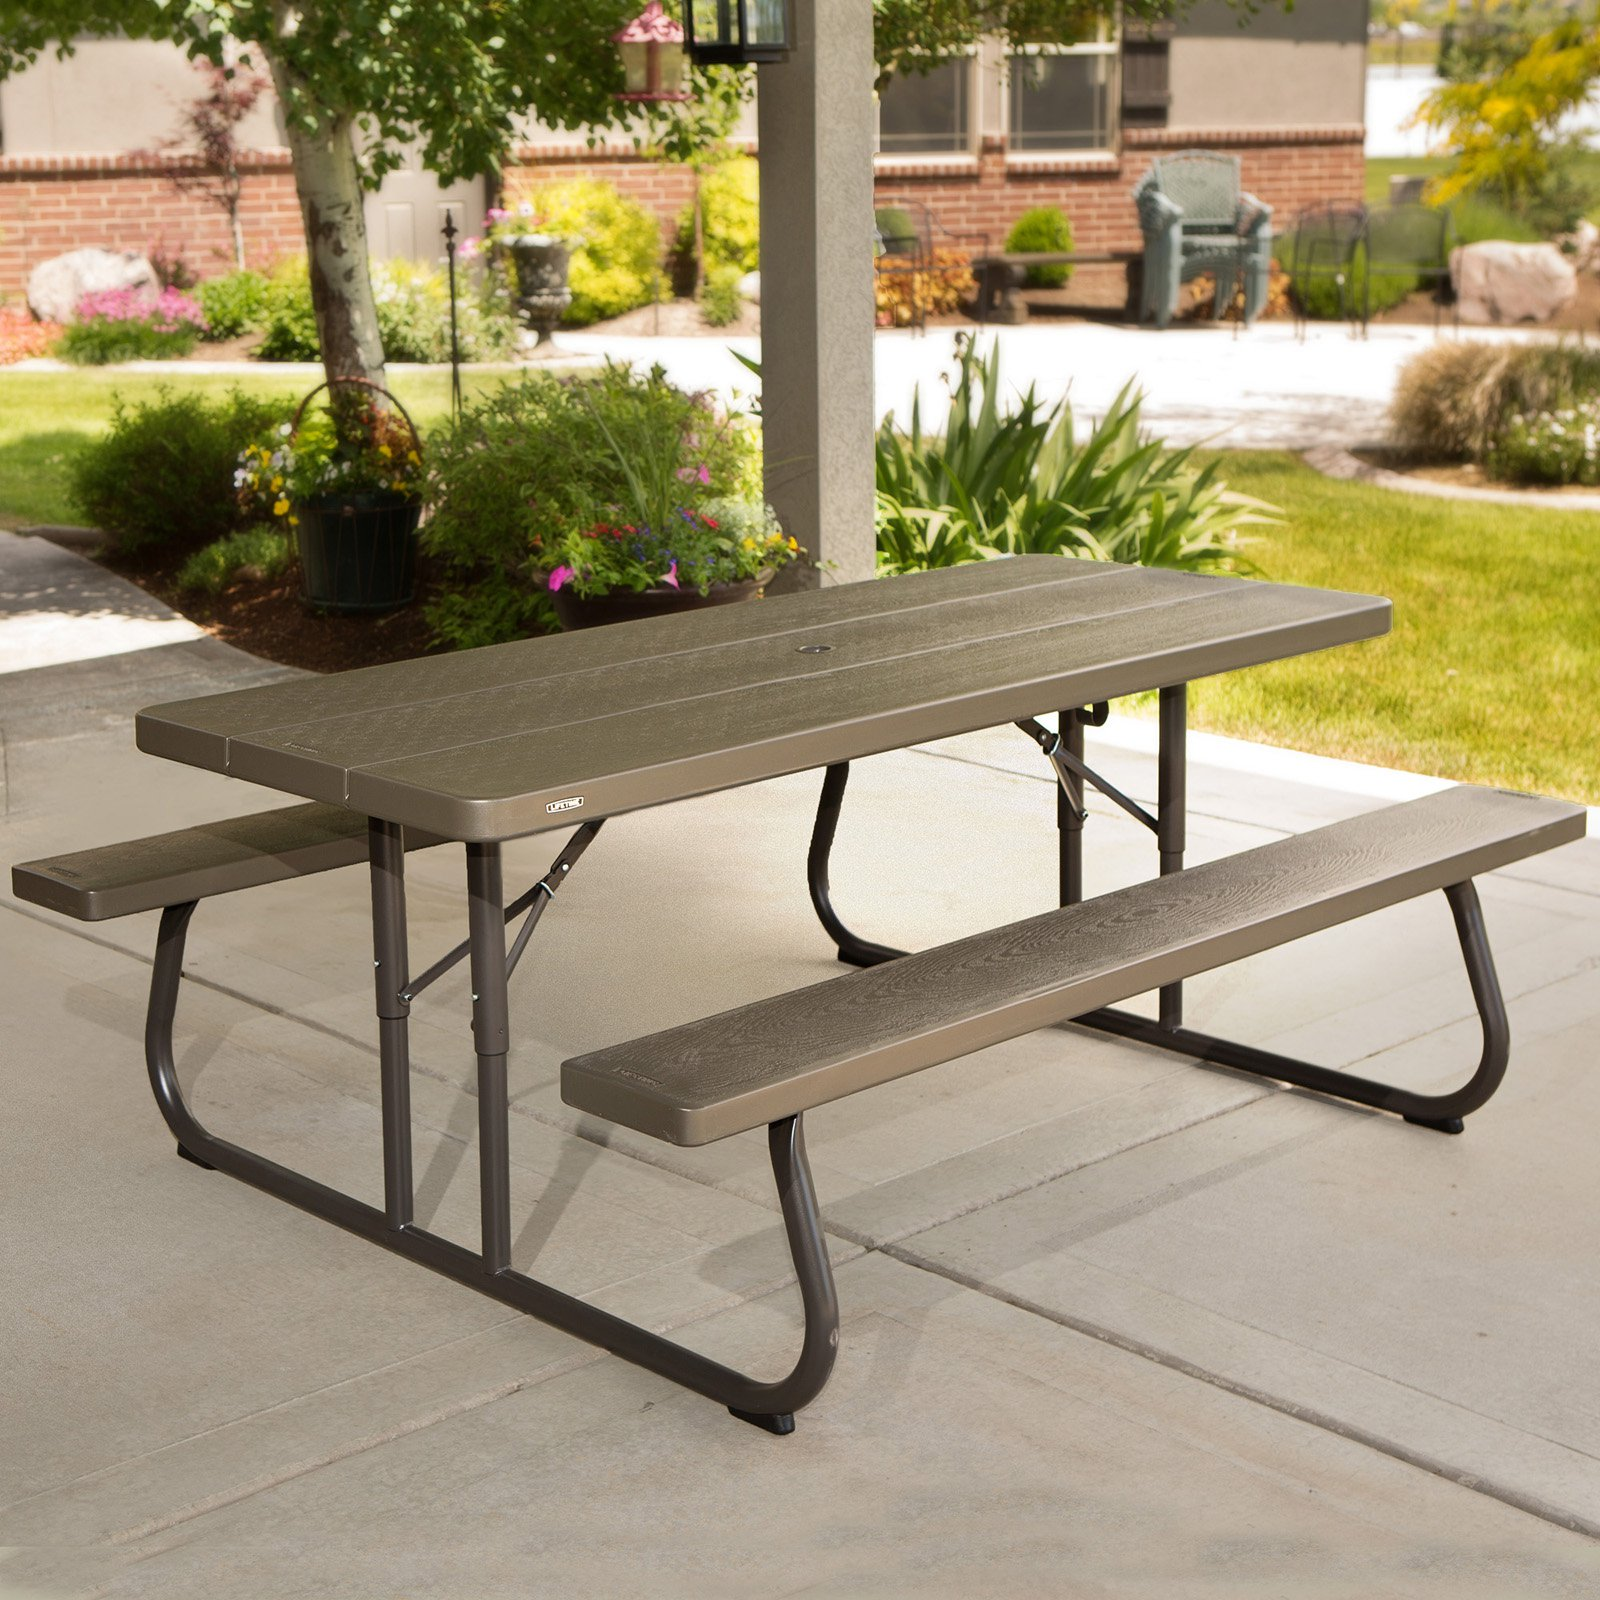 Lifetime 6' Picnic Table, Brown, 60105